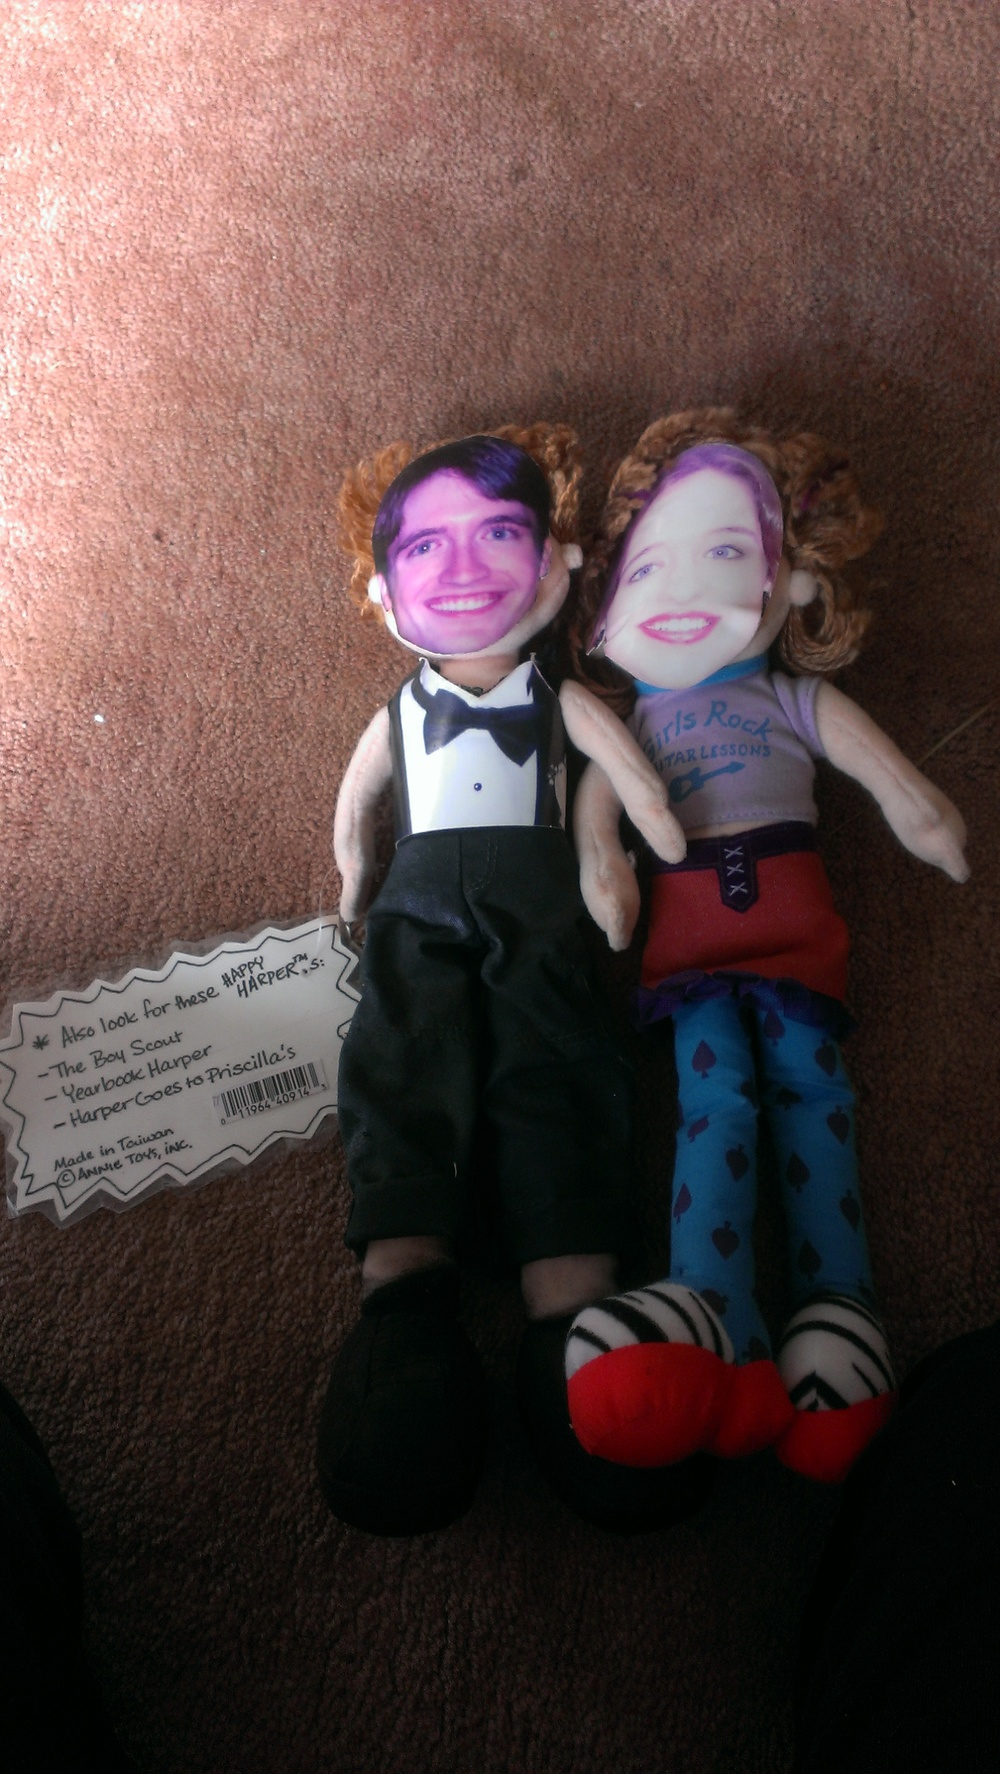 anniemade // Make dolls of yourself to give as gifts at going-away parties